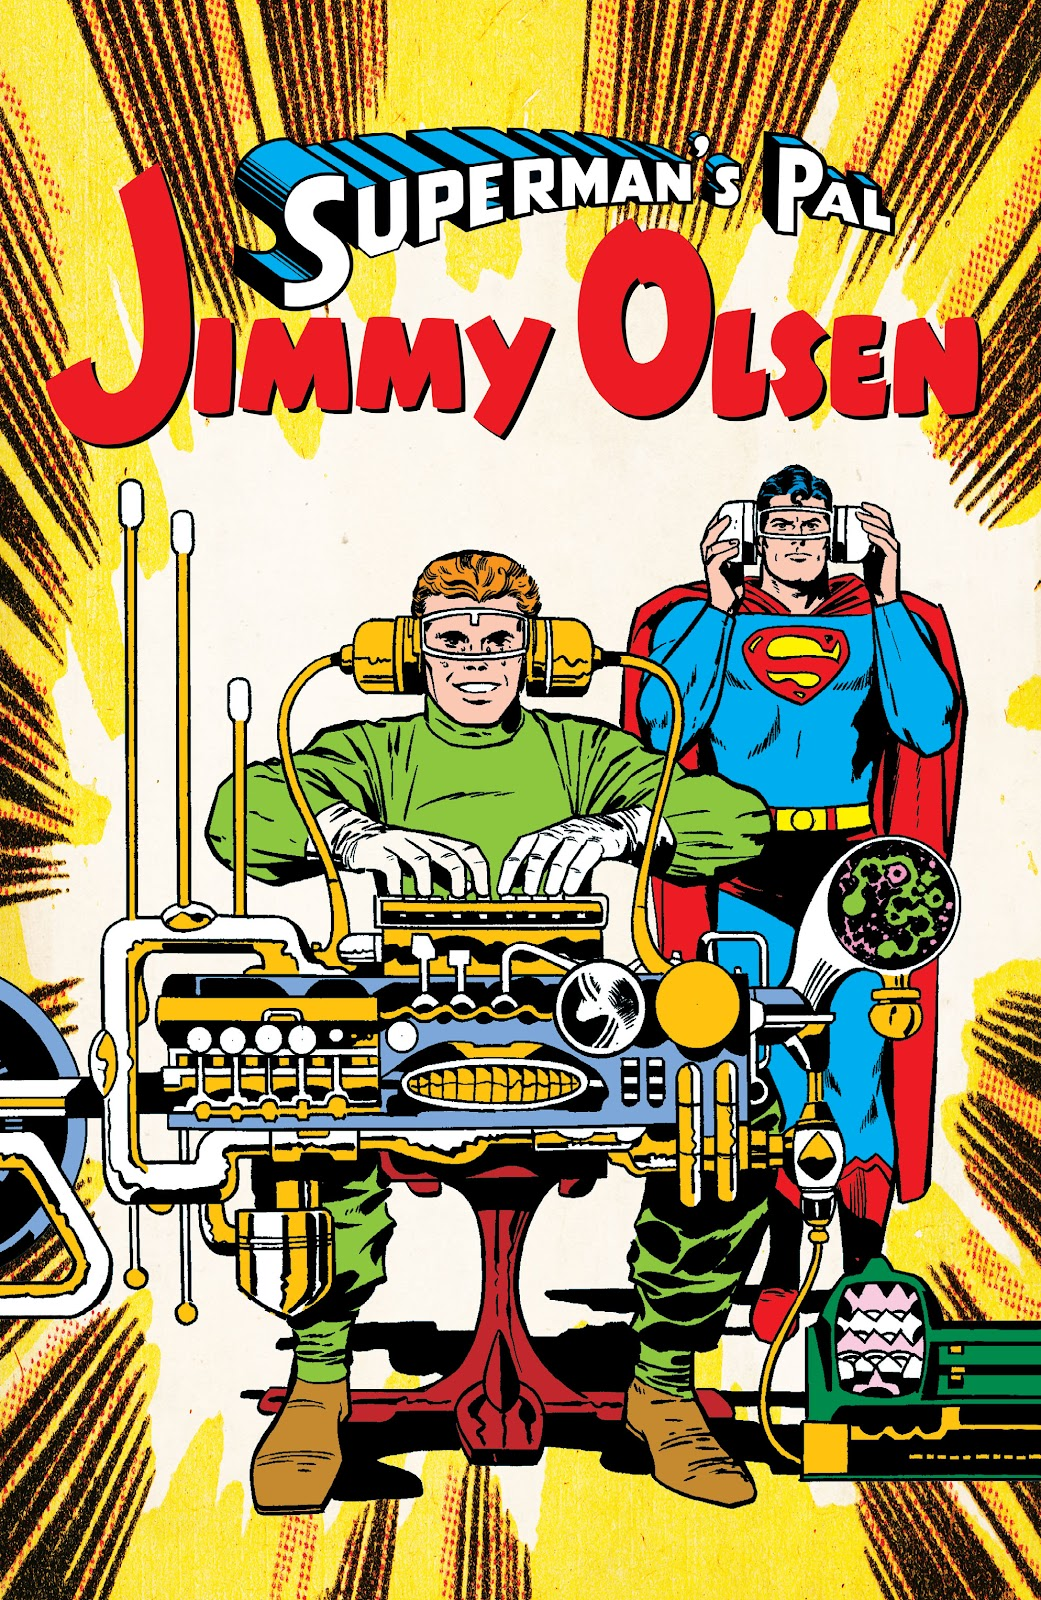 Read online Superman's Pal, Jimmy Olsen by Jack Kirby comic -  Issue # TPB (Part 1) - 2